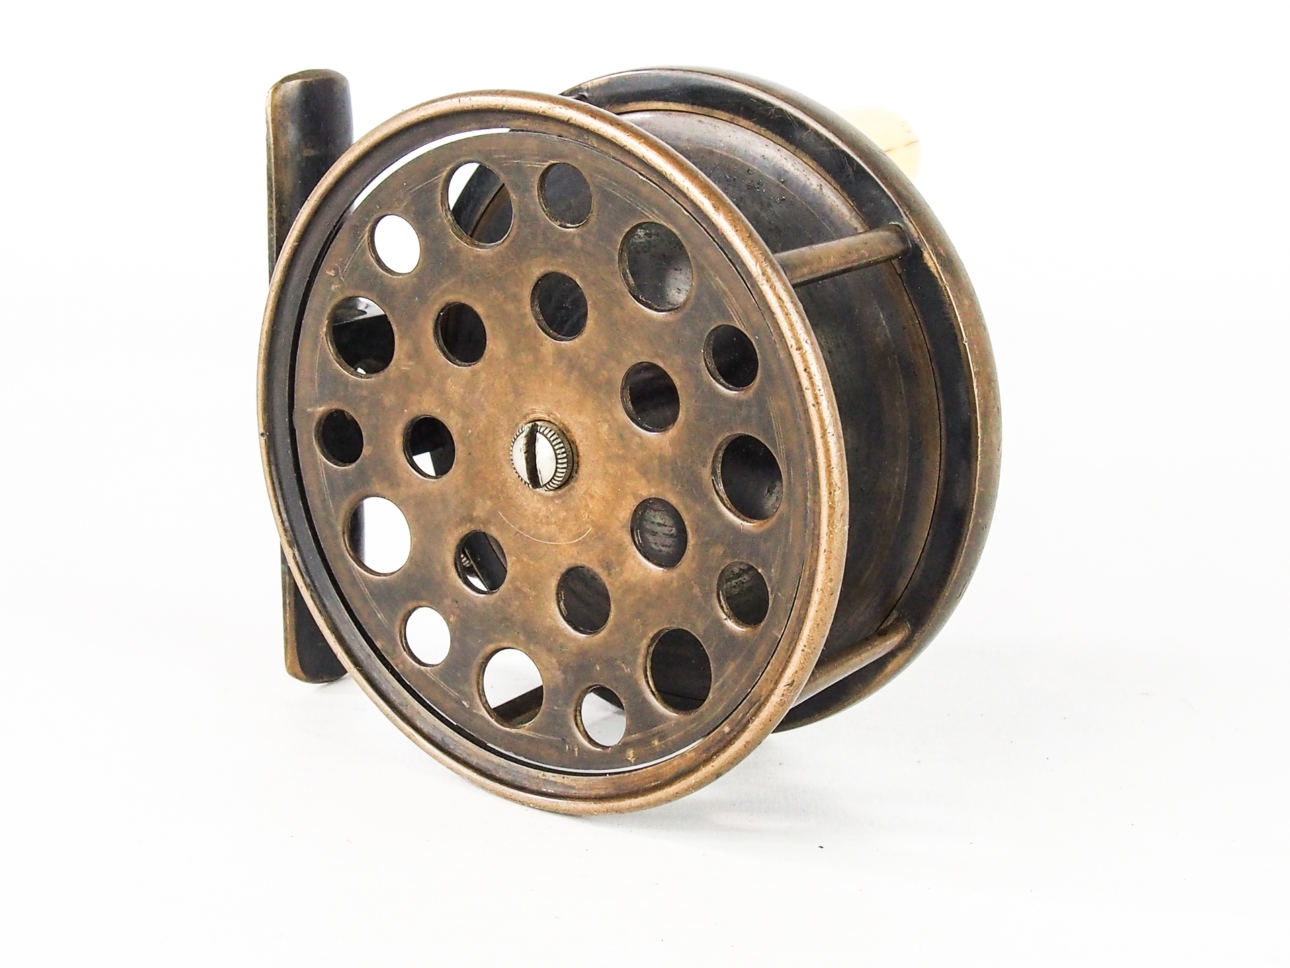 RARE HARDY C189Os 4″ ALL BRASS SALMON PERFECT FLY REEL ...